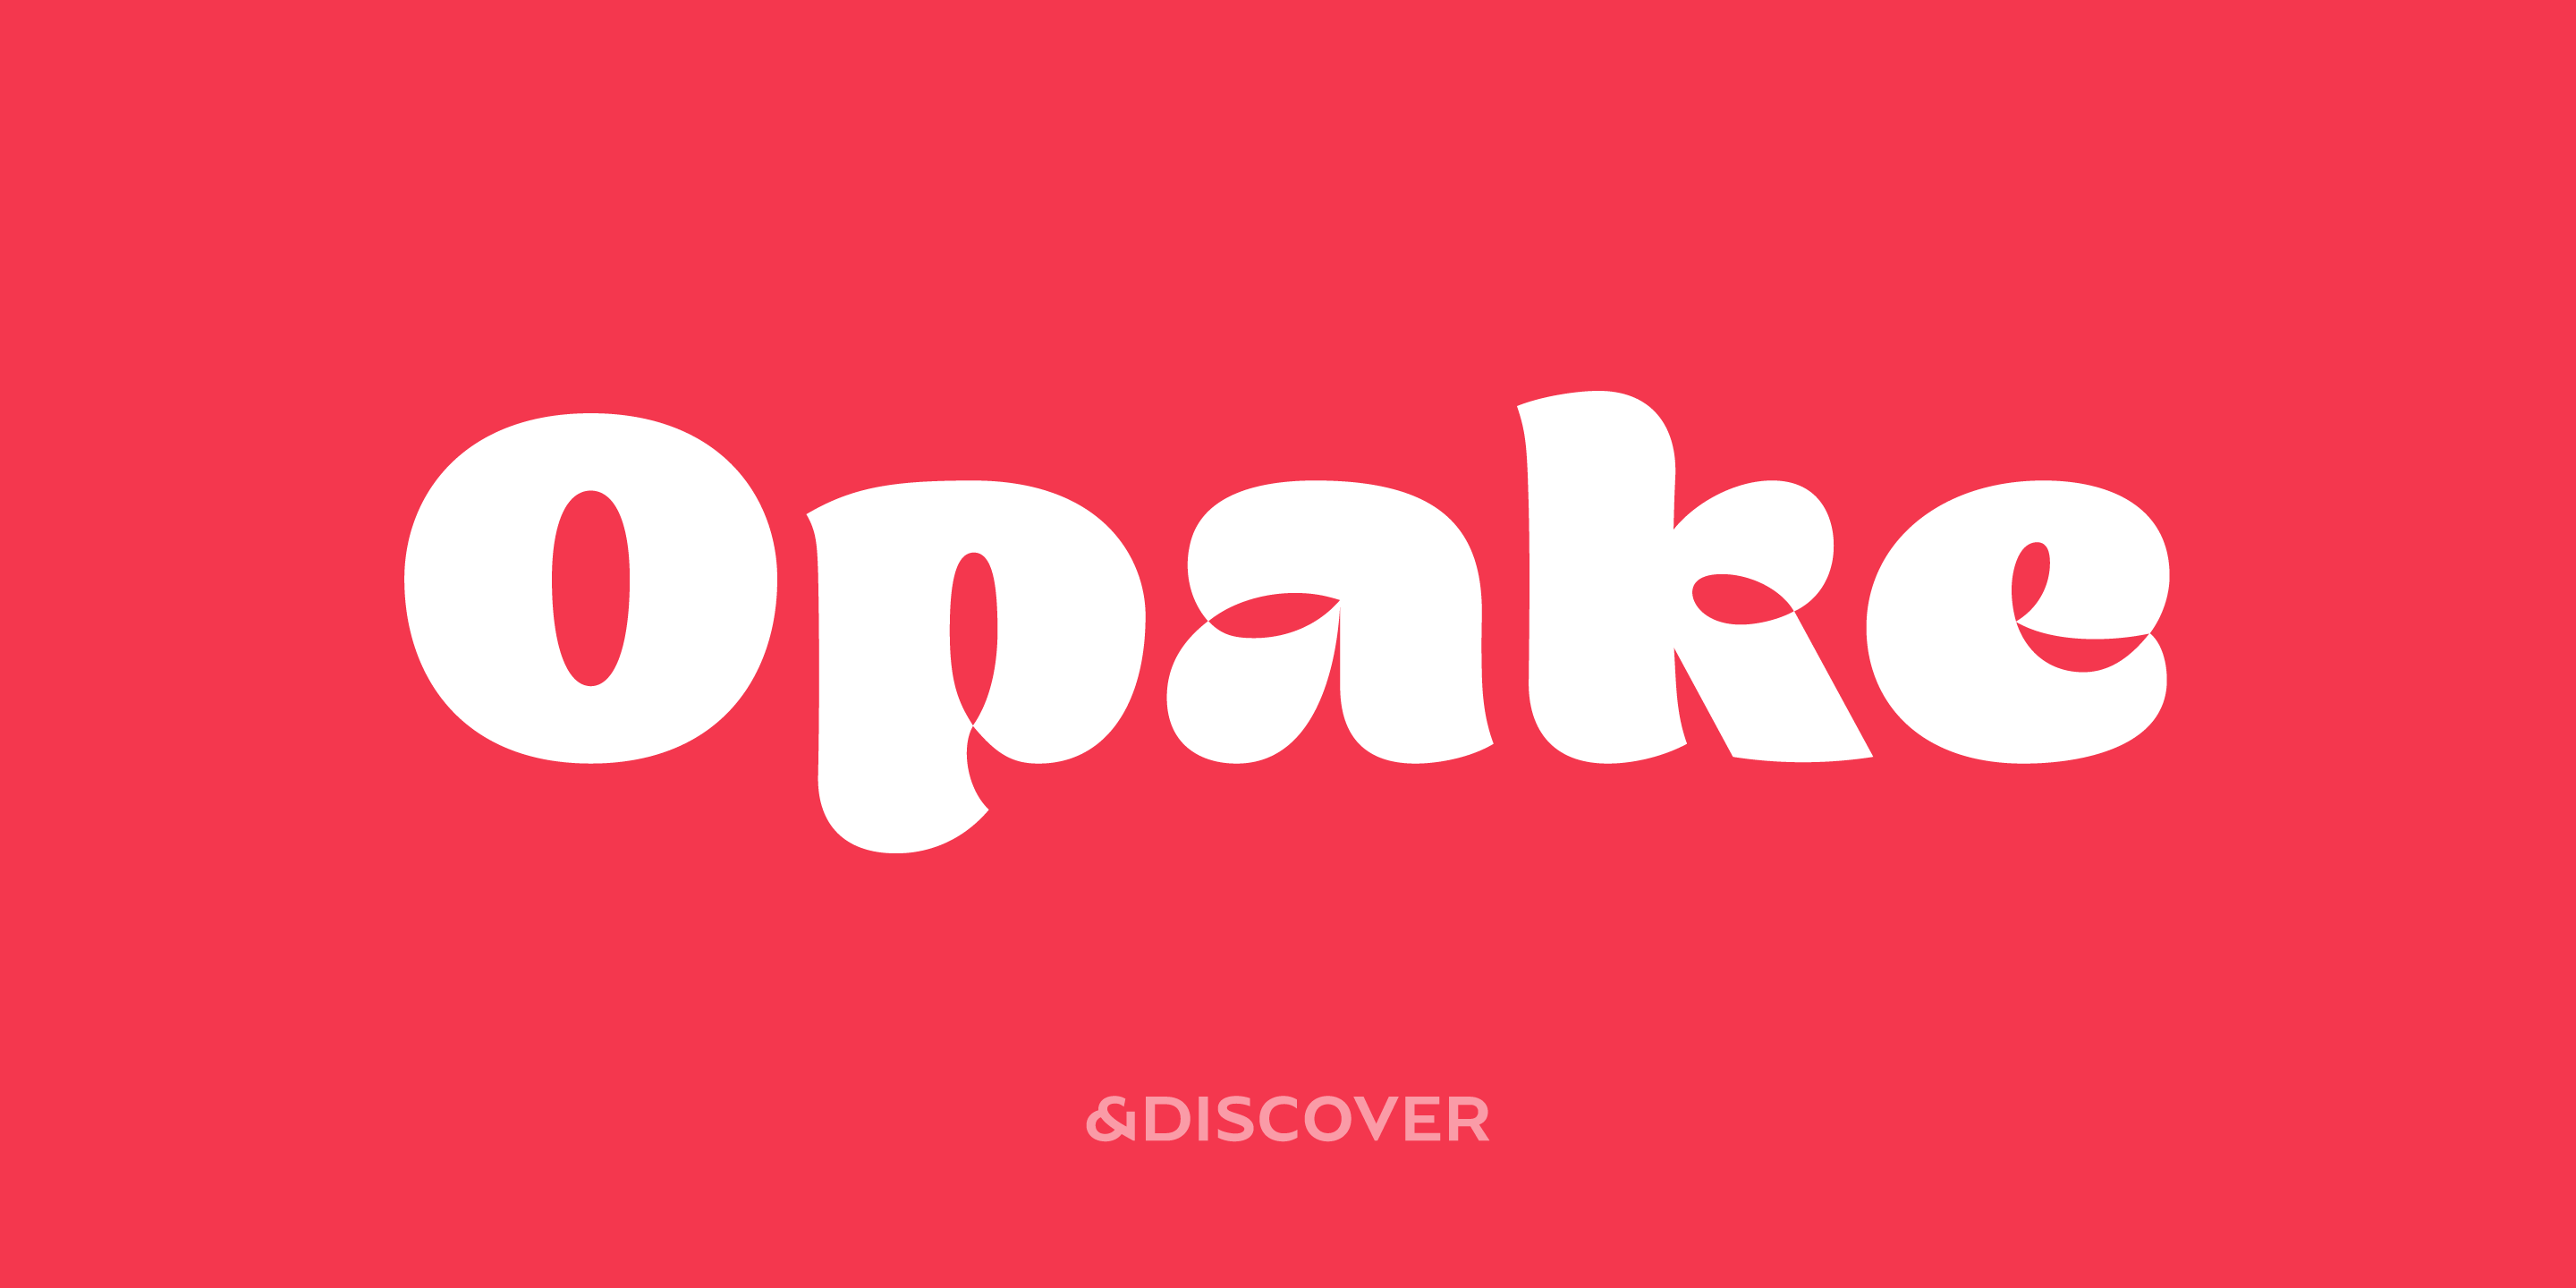 Opake, typeface designed by Natanael Gama from Ndiscover type for Typeverything.com